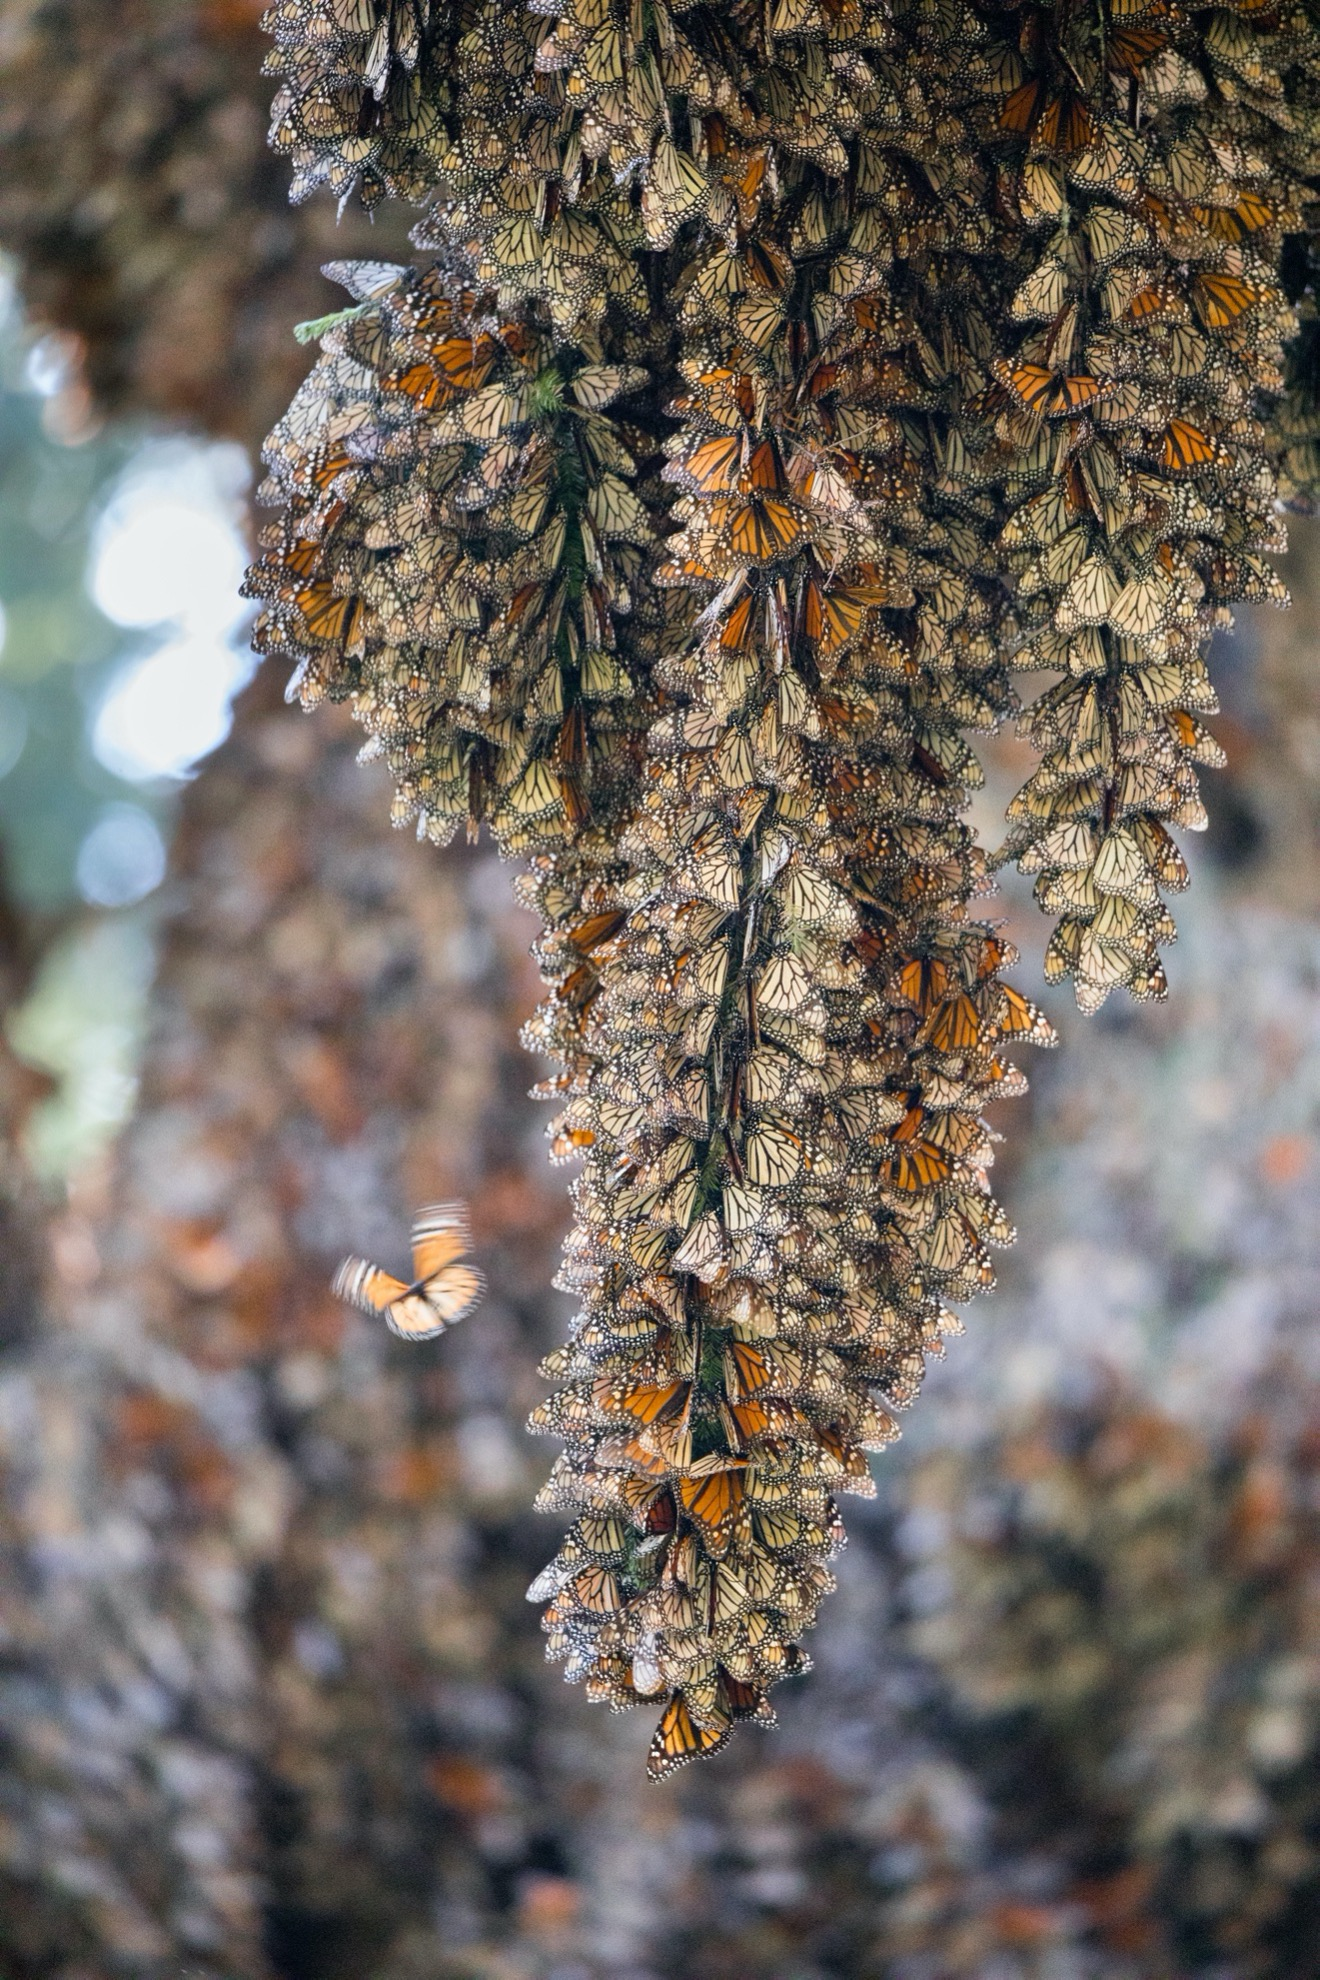 a single cluster of monarch butterflies cling to a tree branch